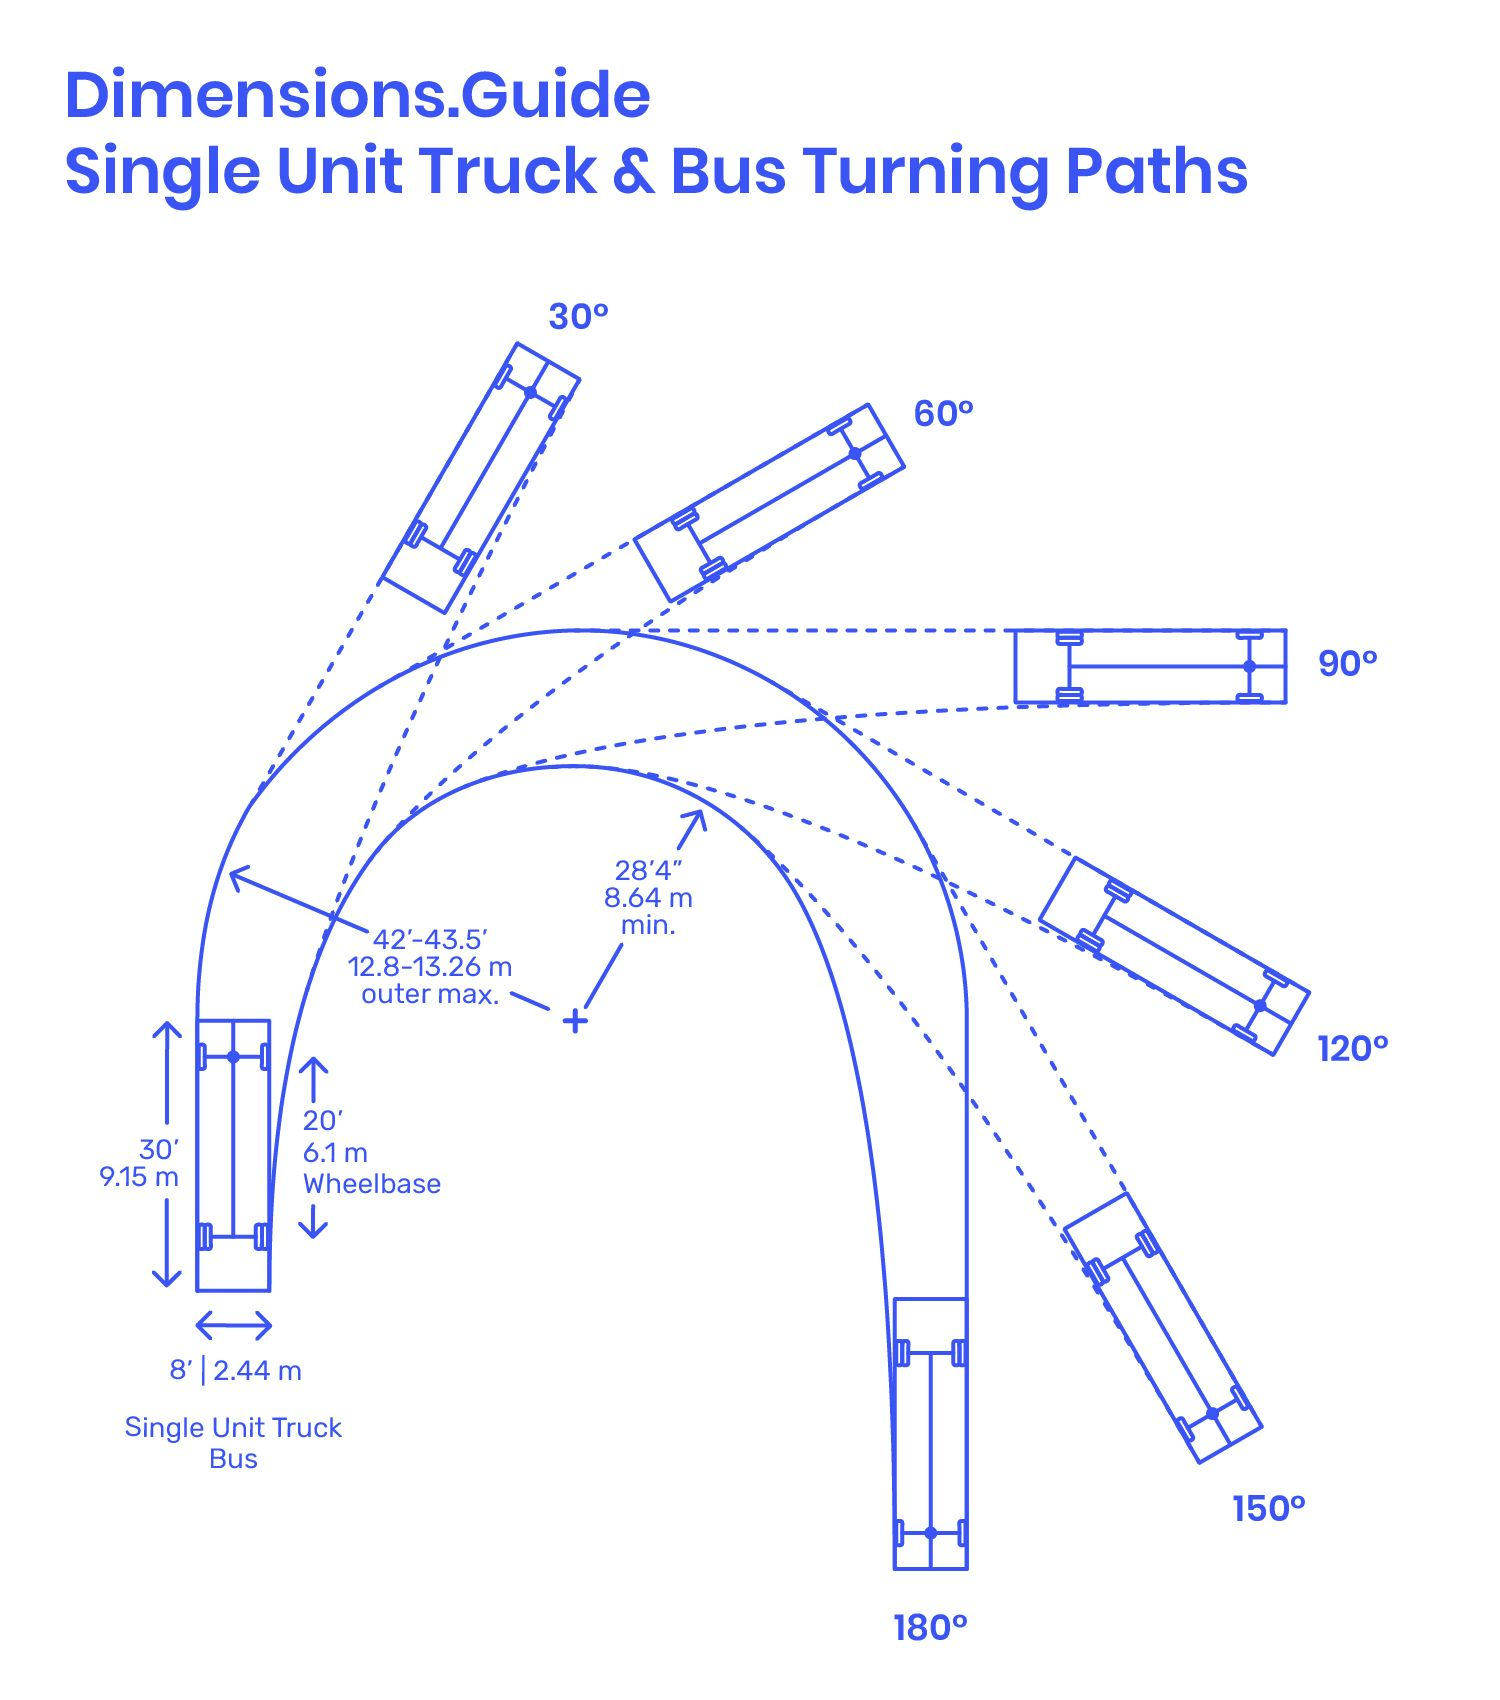 The turning path of a SingleUnit Truck or Bus measures